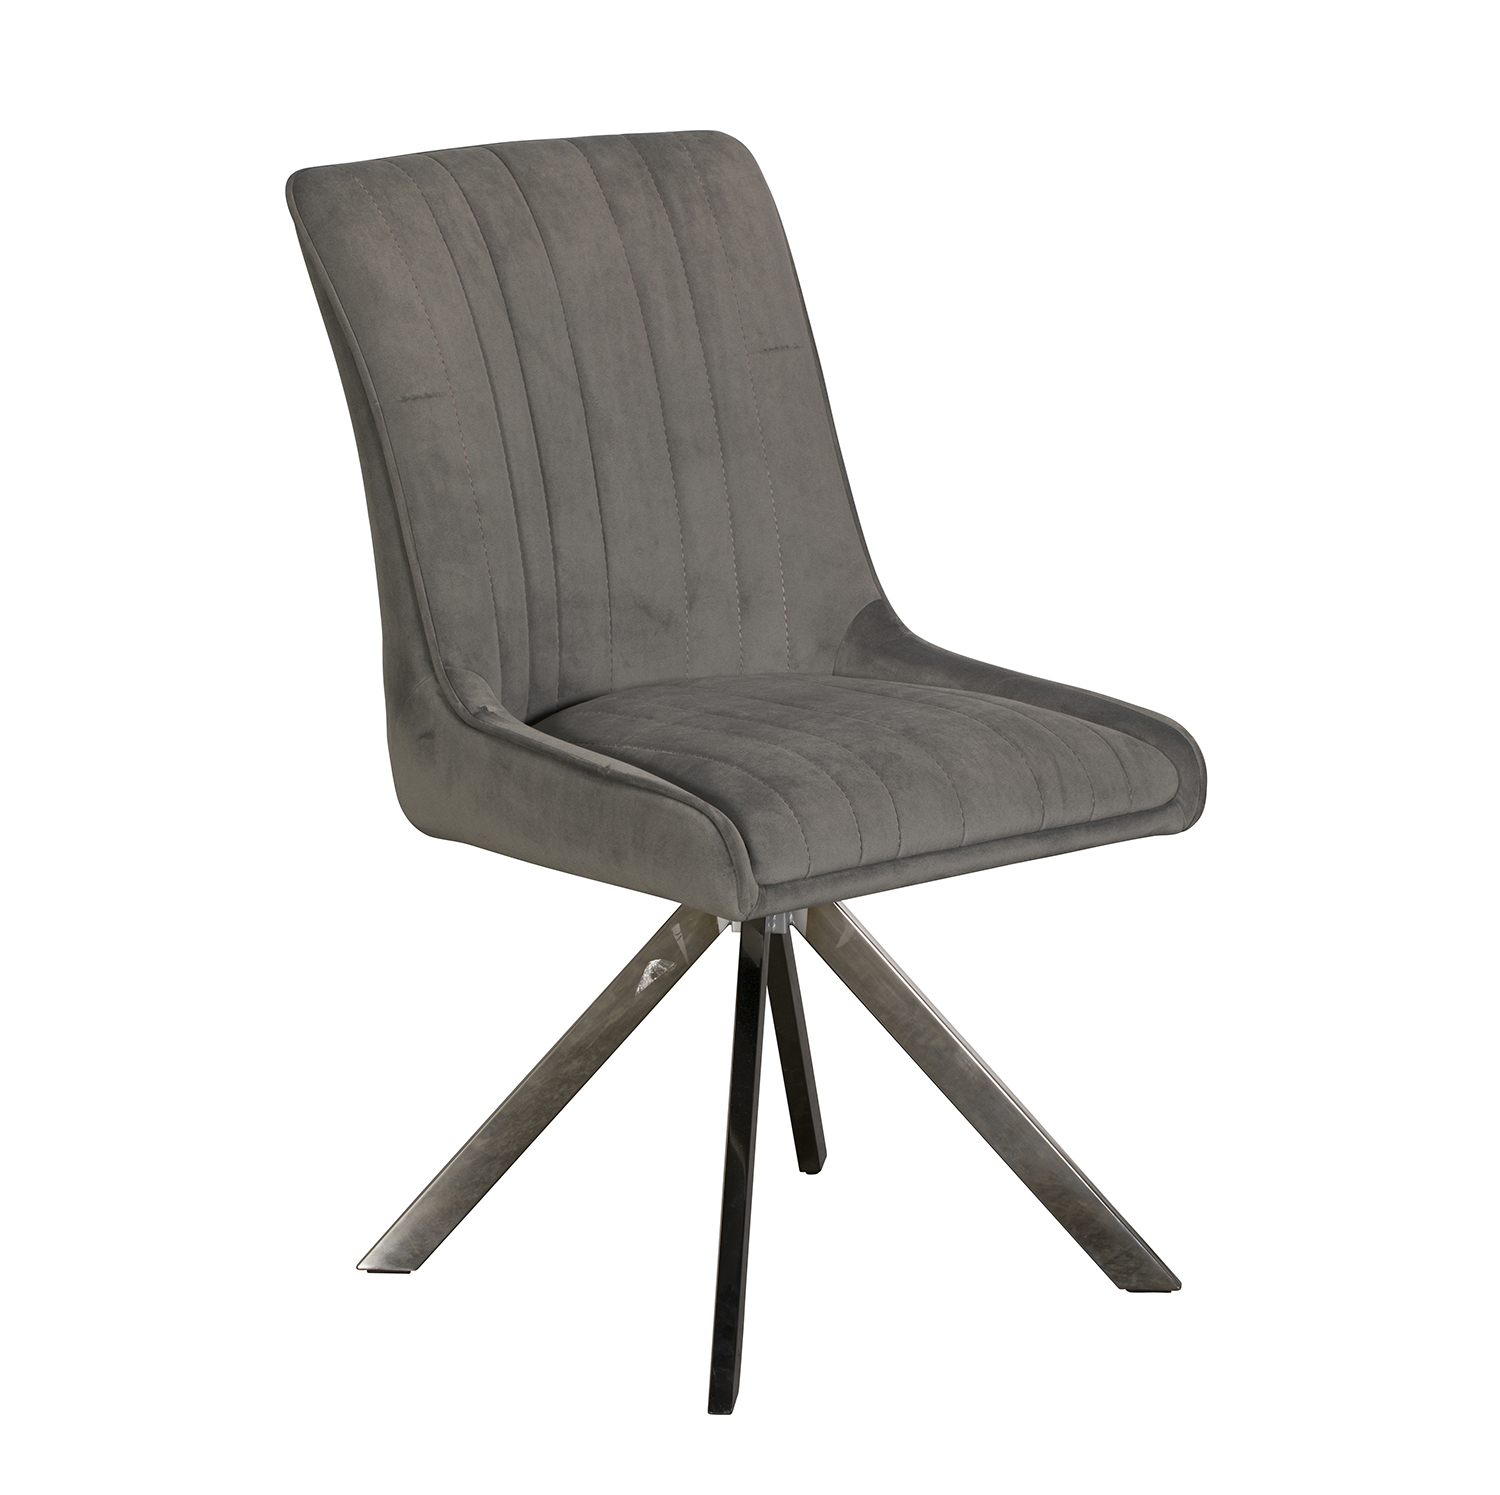 Chloe Dining Chair - Grey Velvet